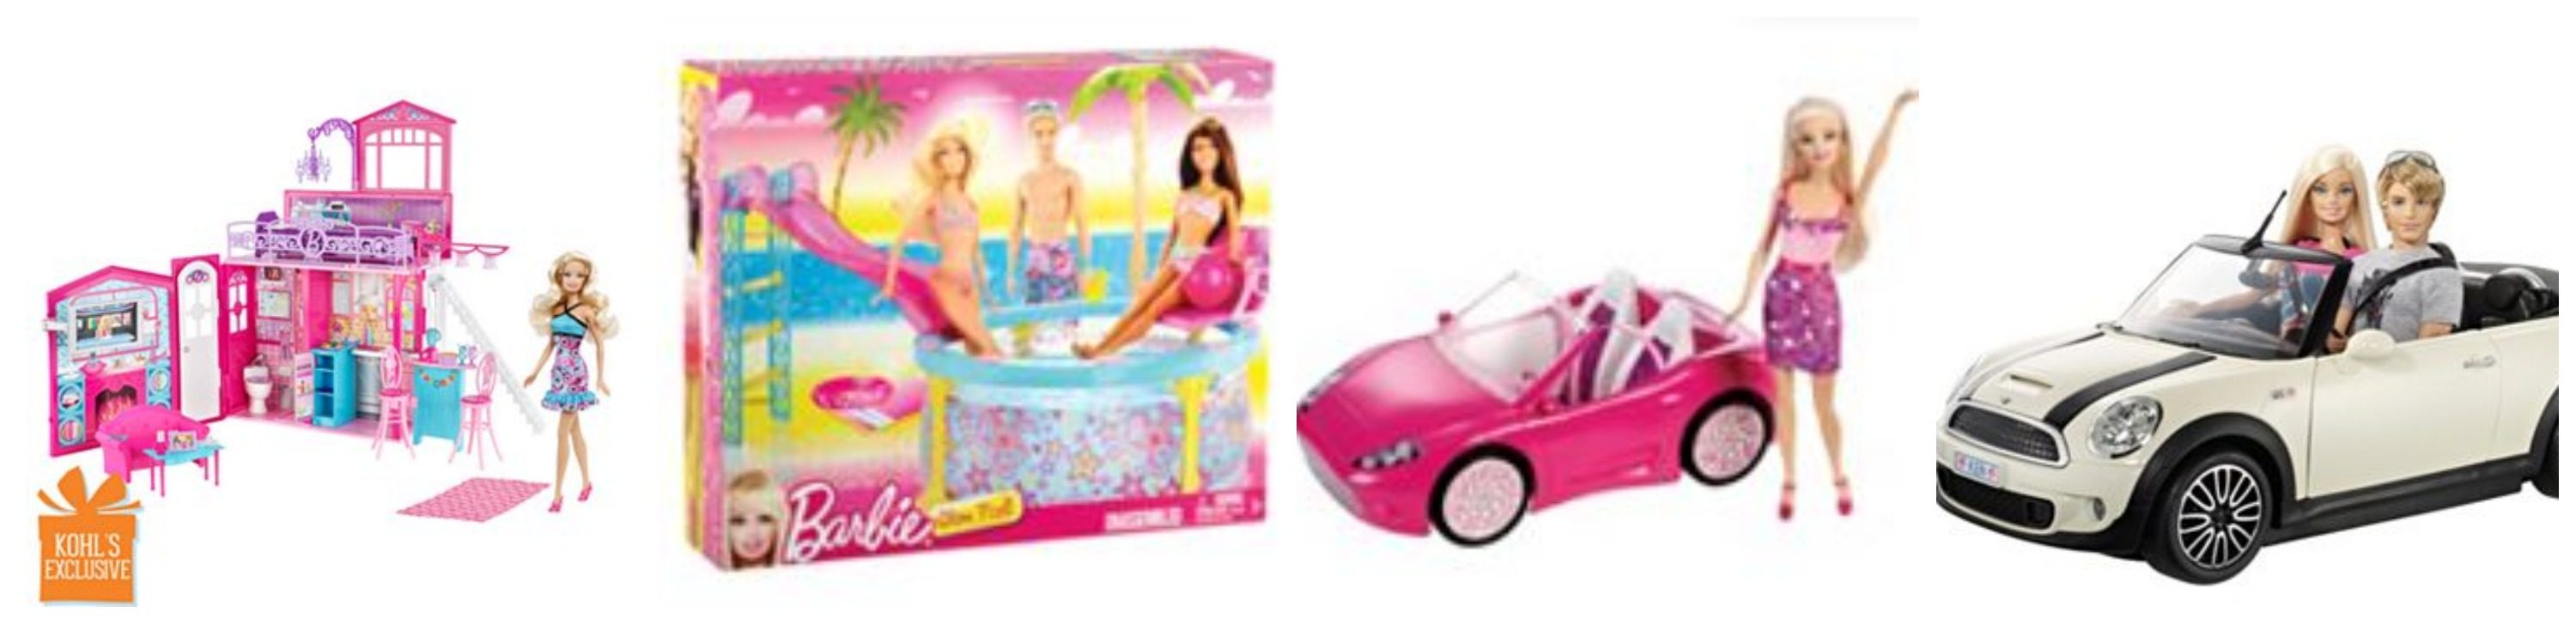 Barbie collection coupon code